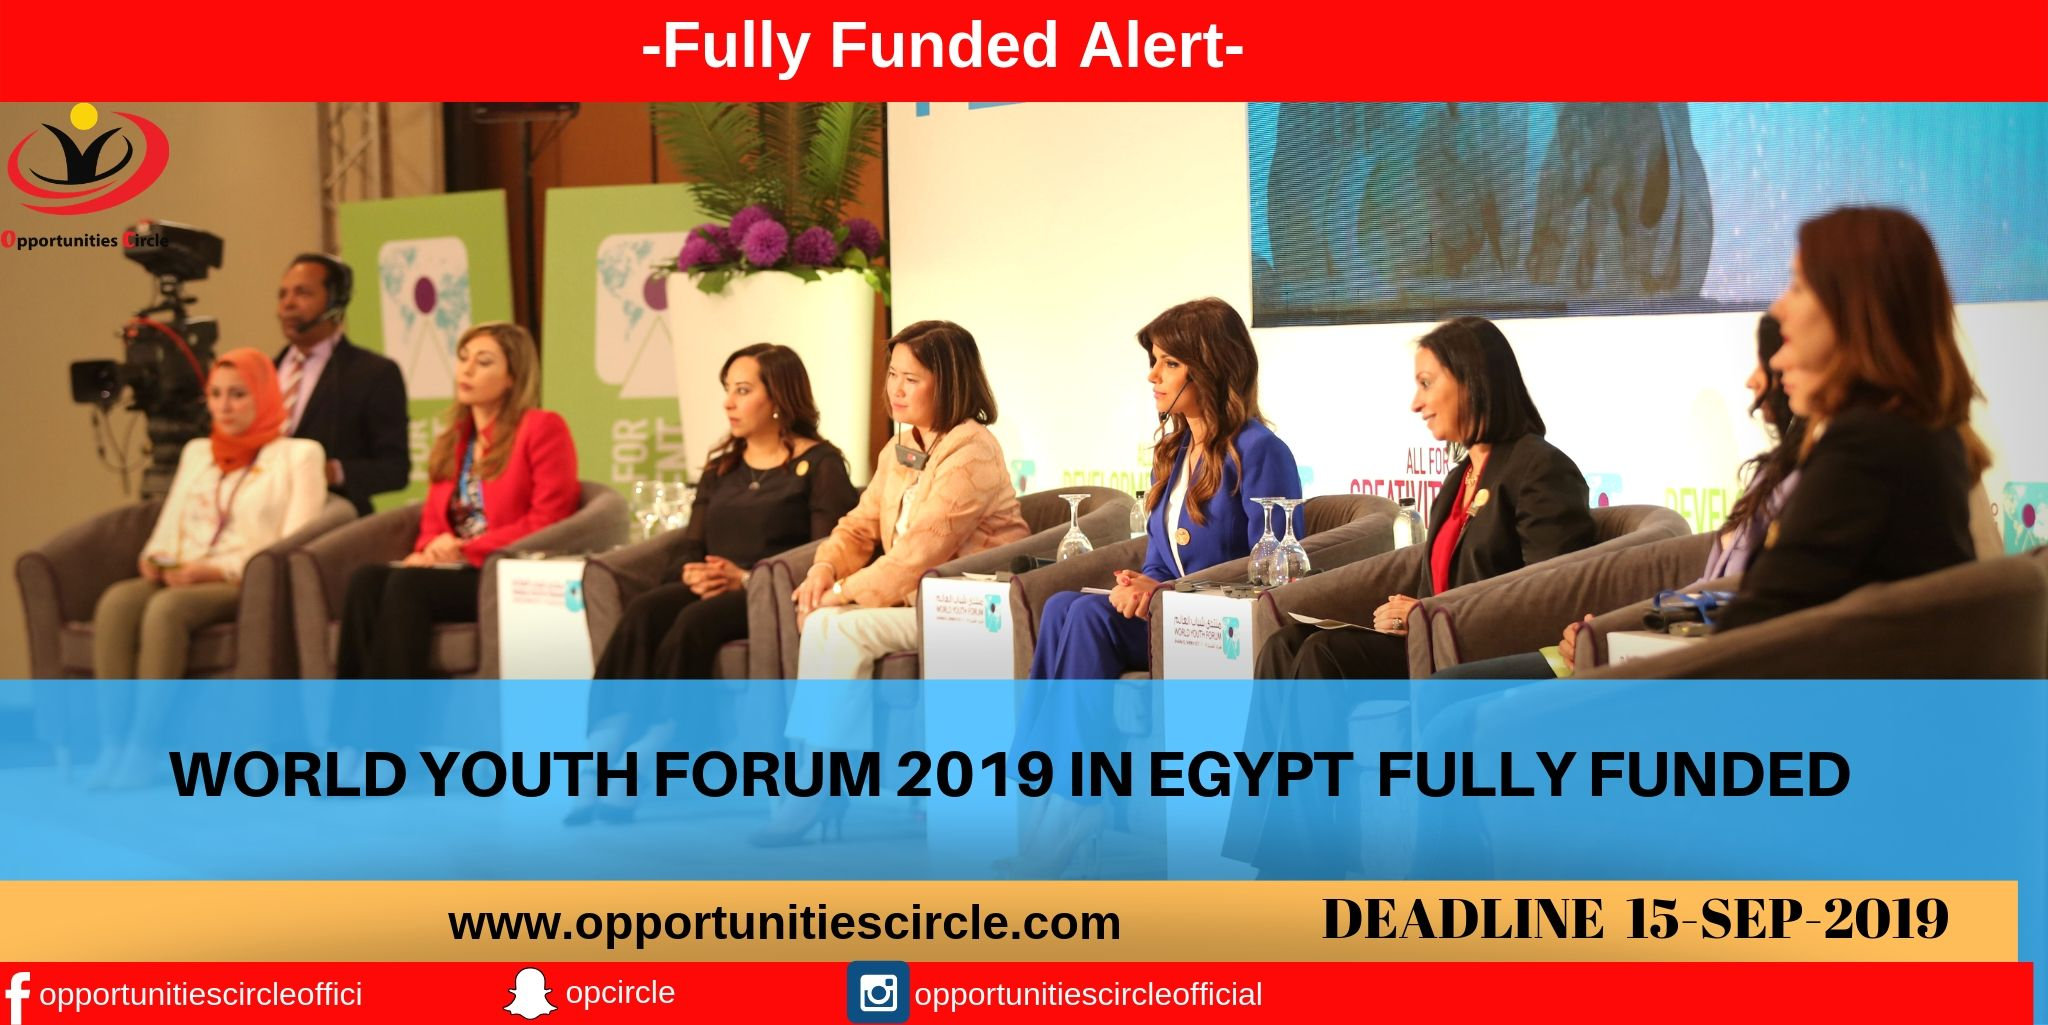 WORLD YOUTH FORUM IN EGYPT 2019 – FULLY FUNDED